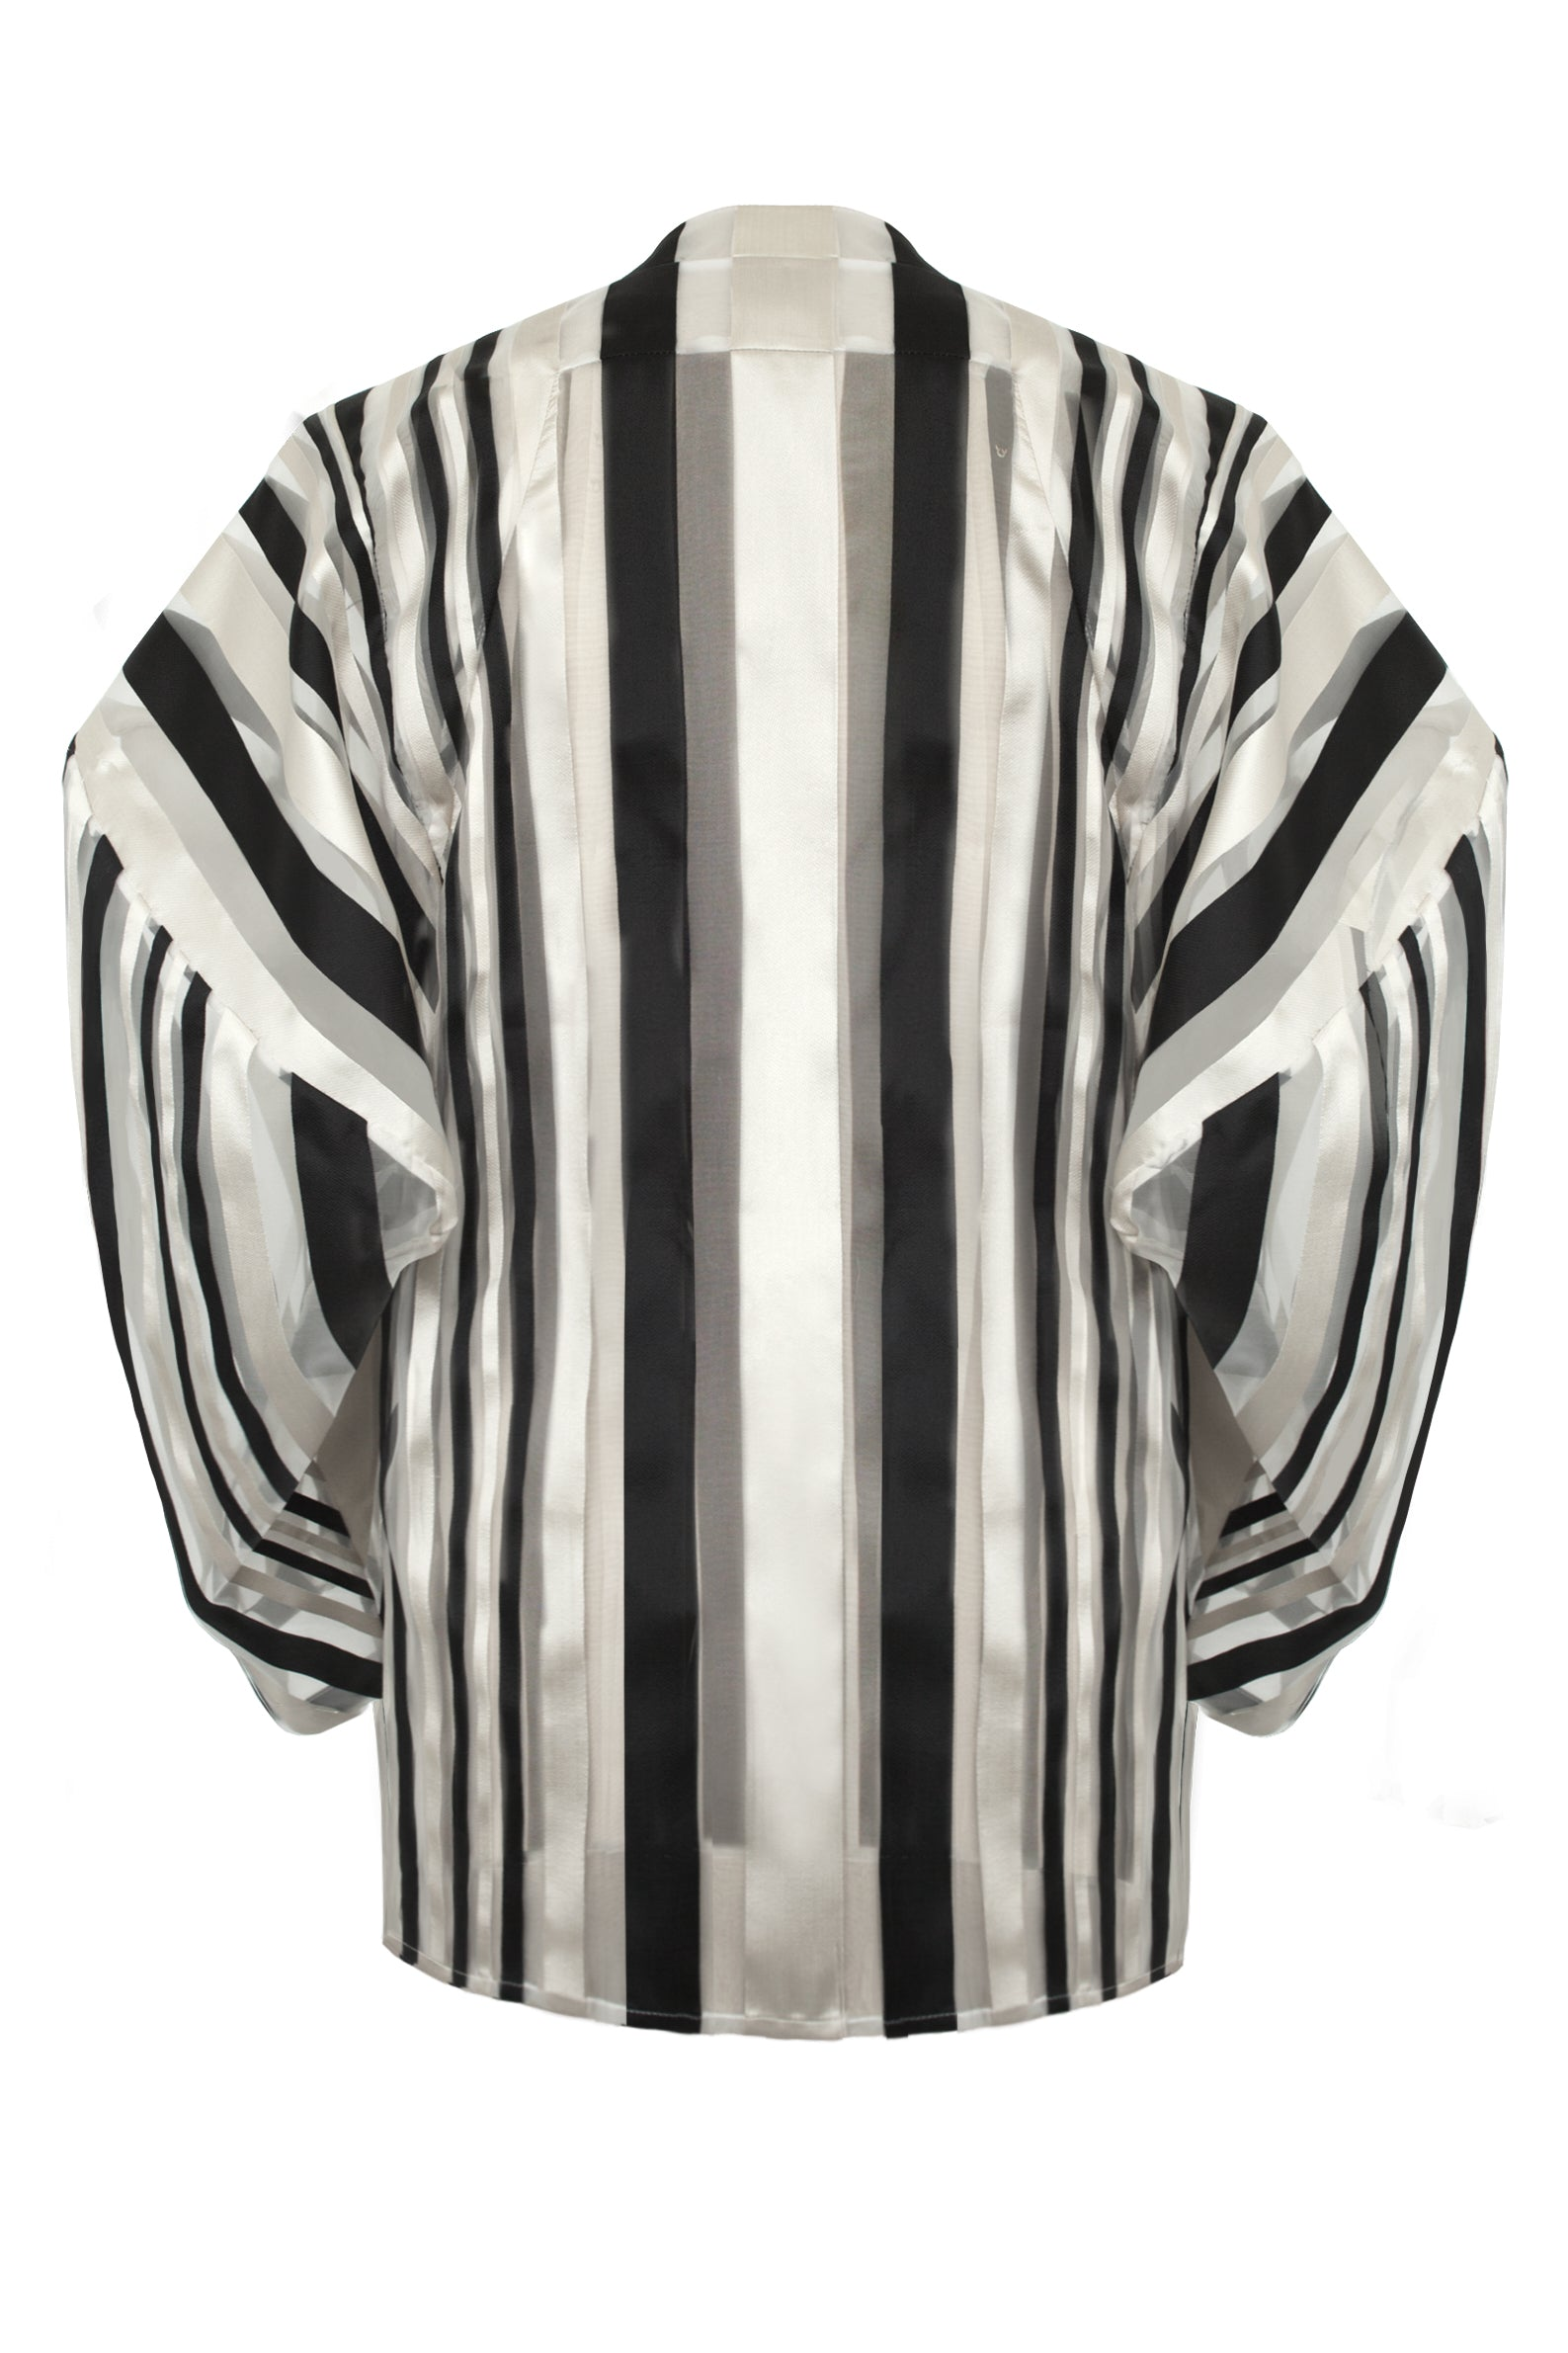 "Black, Cream and Transparent Striped ""Oval"" Blouse"